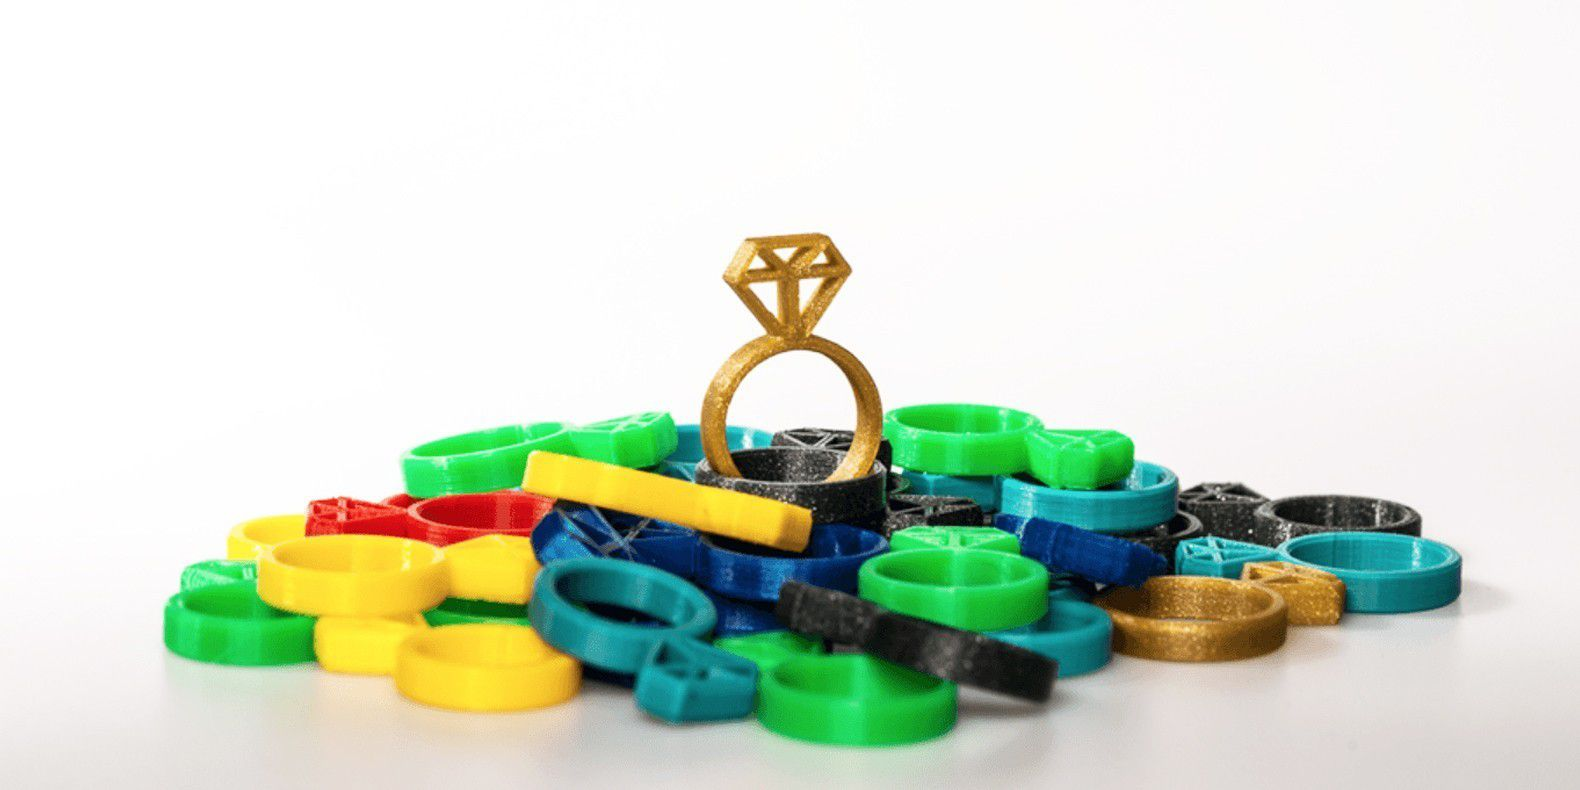 Here is a selection of the best rings 3D models to make with a 3D printer